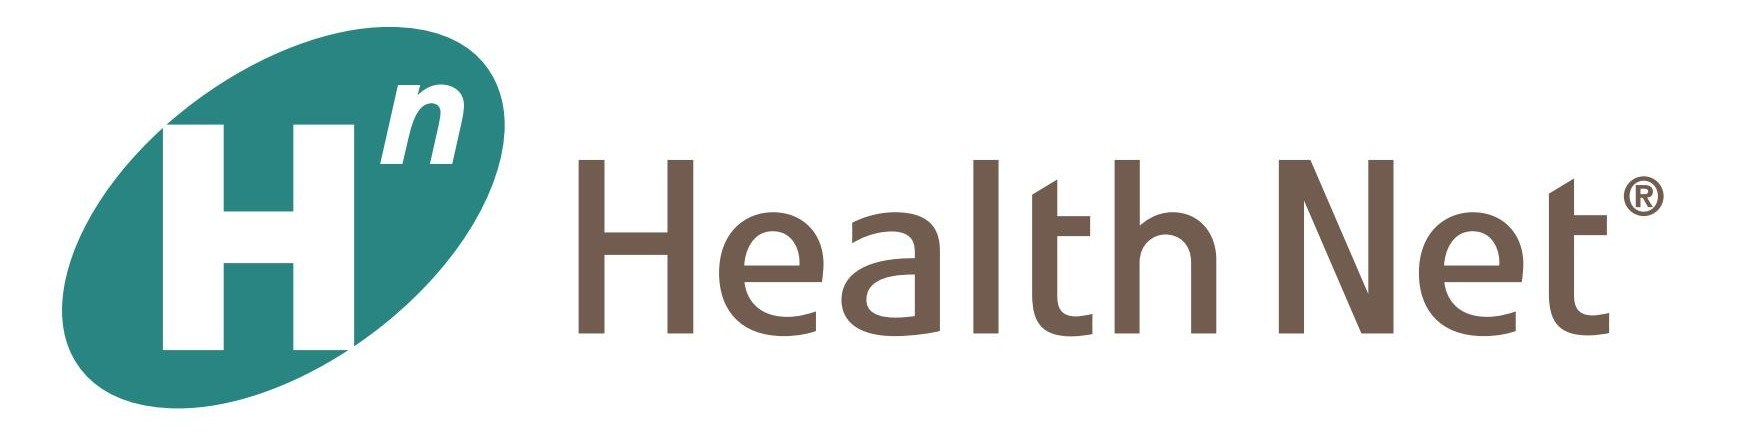 Image result for healthnet logo